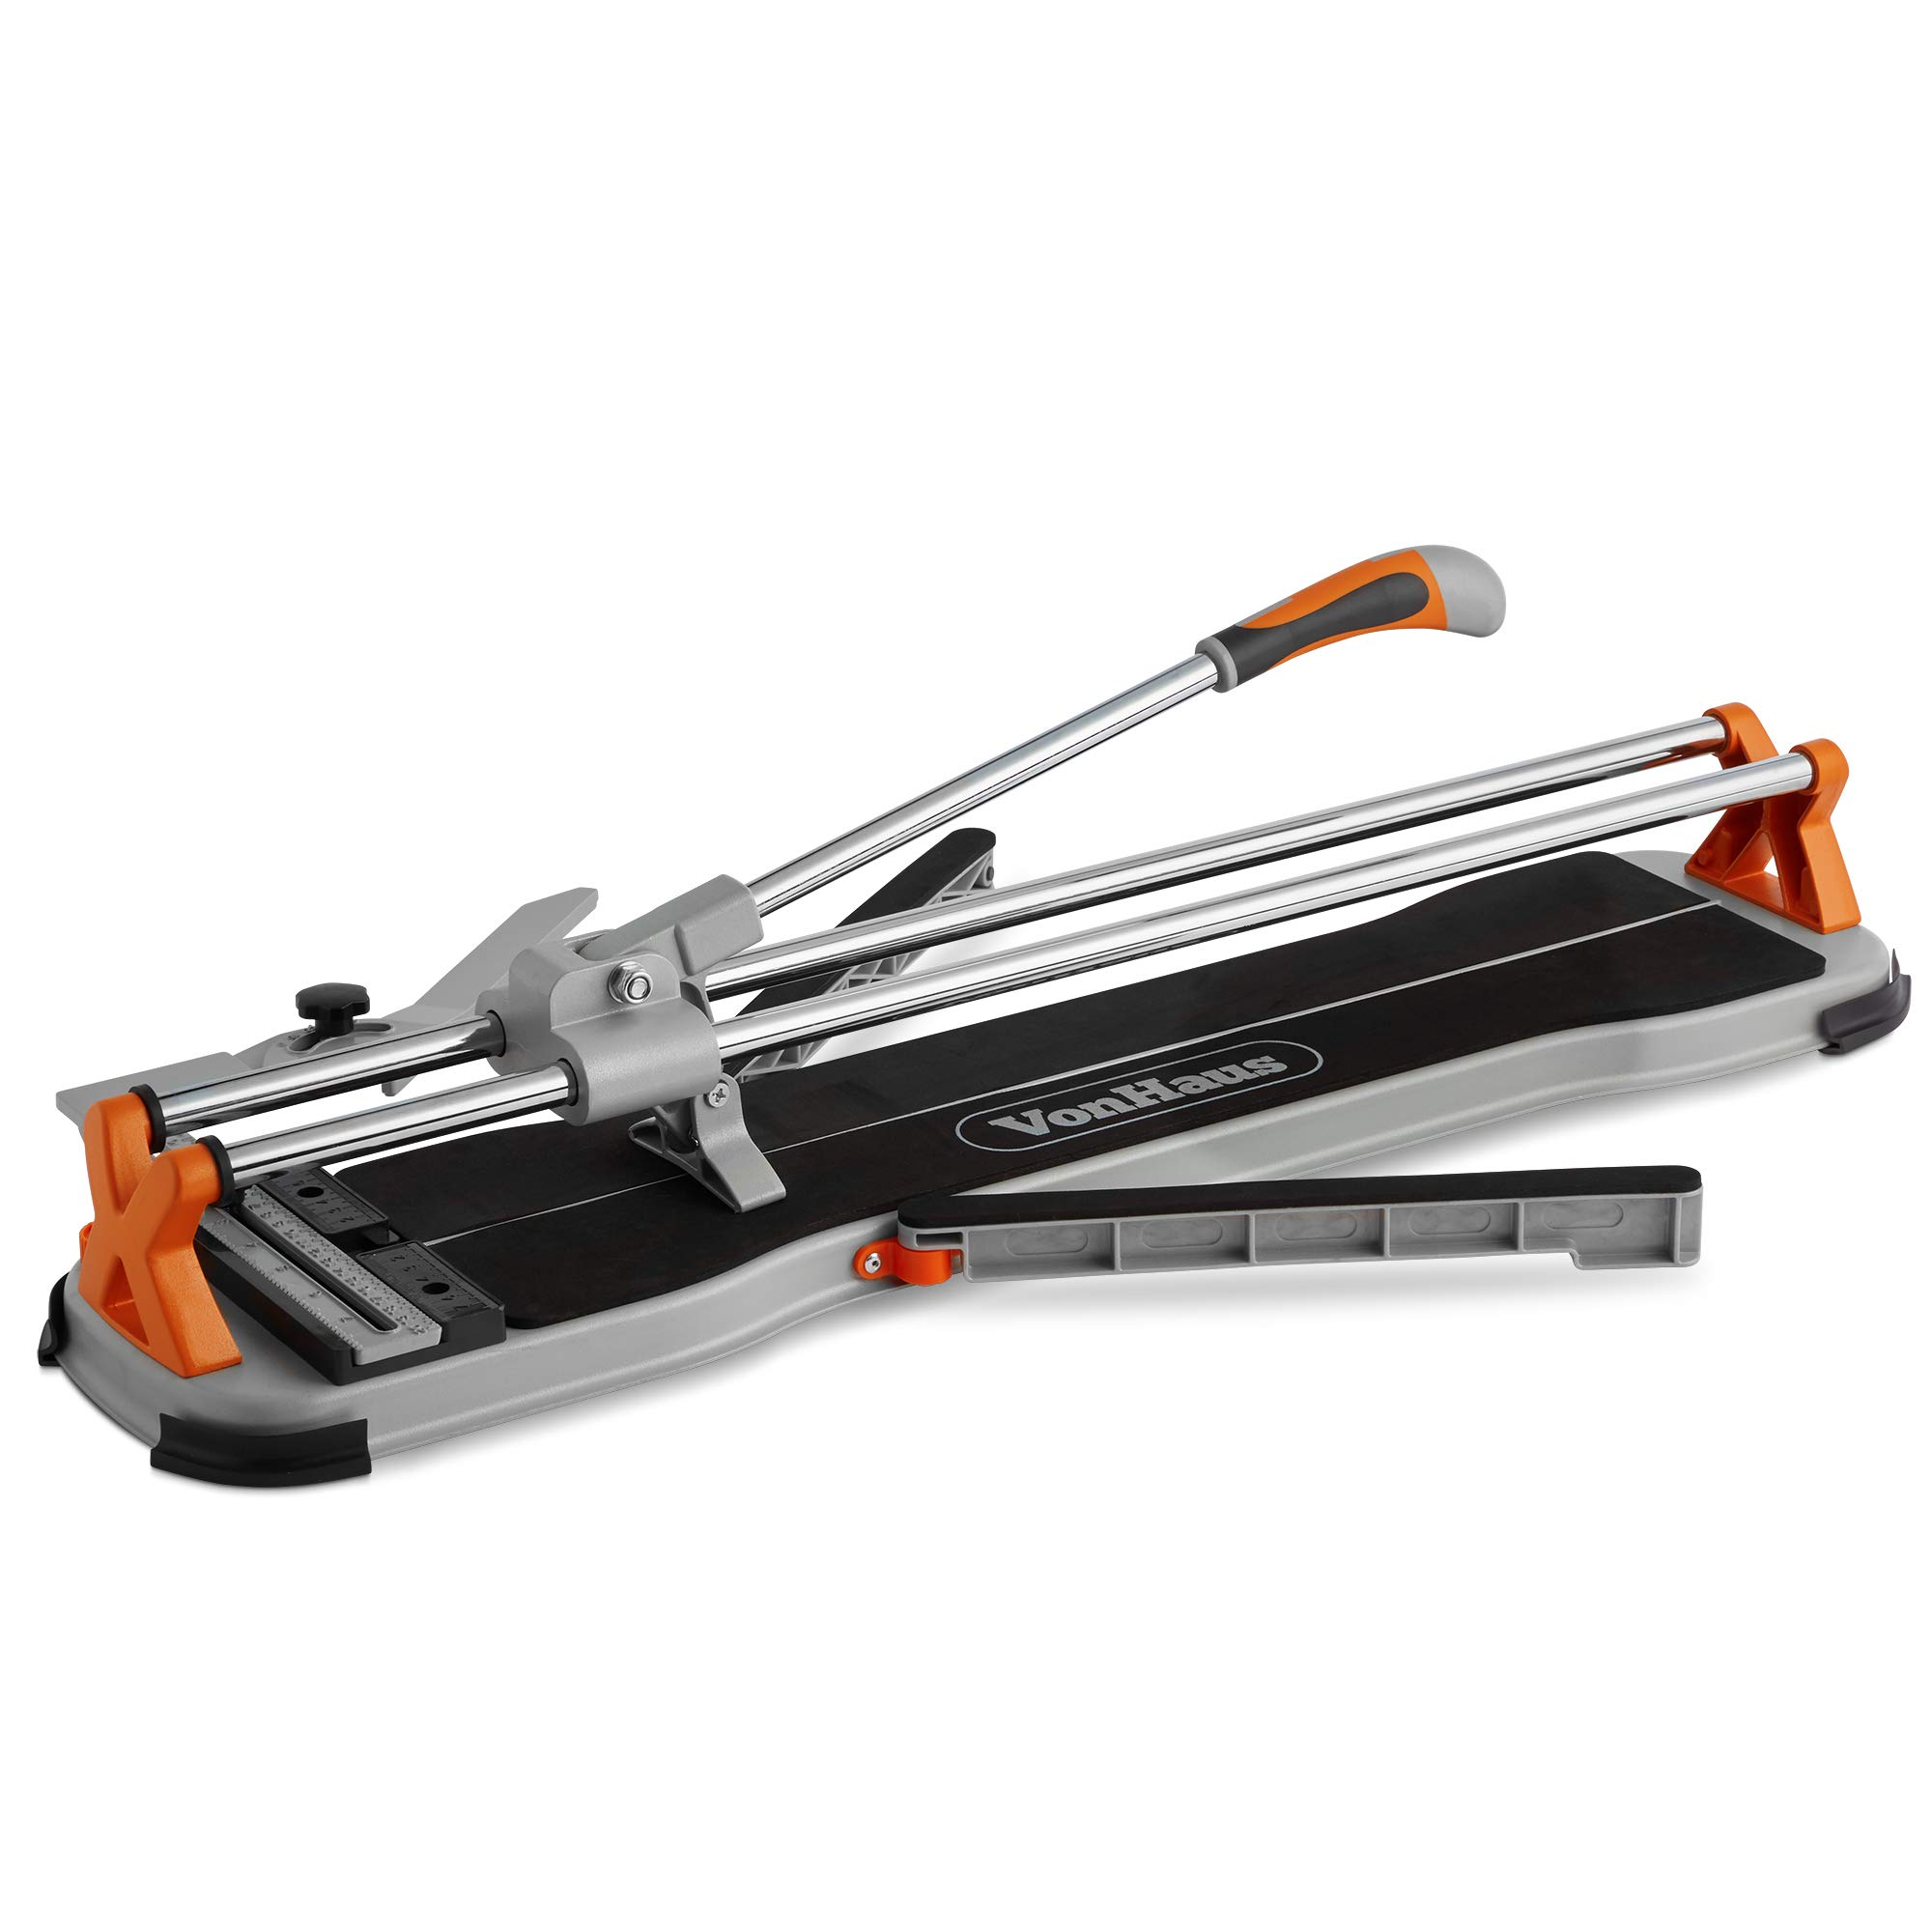 VonHaus 24 Inch Manual Tile Cutter with Tungsten Carbide Cutting Wheel, Anti-sliding Rubber Surface, 1x Spare Scoring Wheel - Suitable for Porcelain and Ceramic Floor and Ceiling Tiles by VonHaus